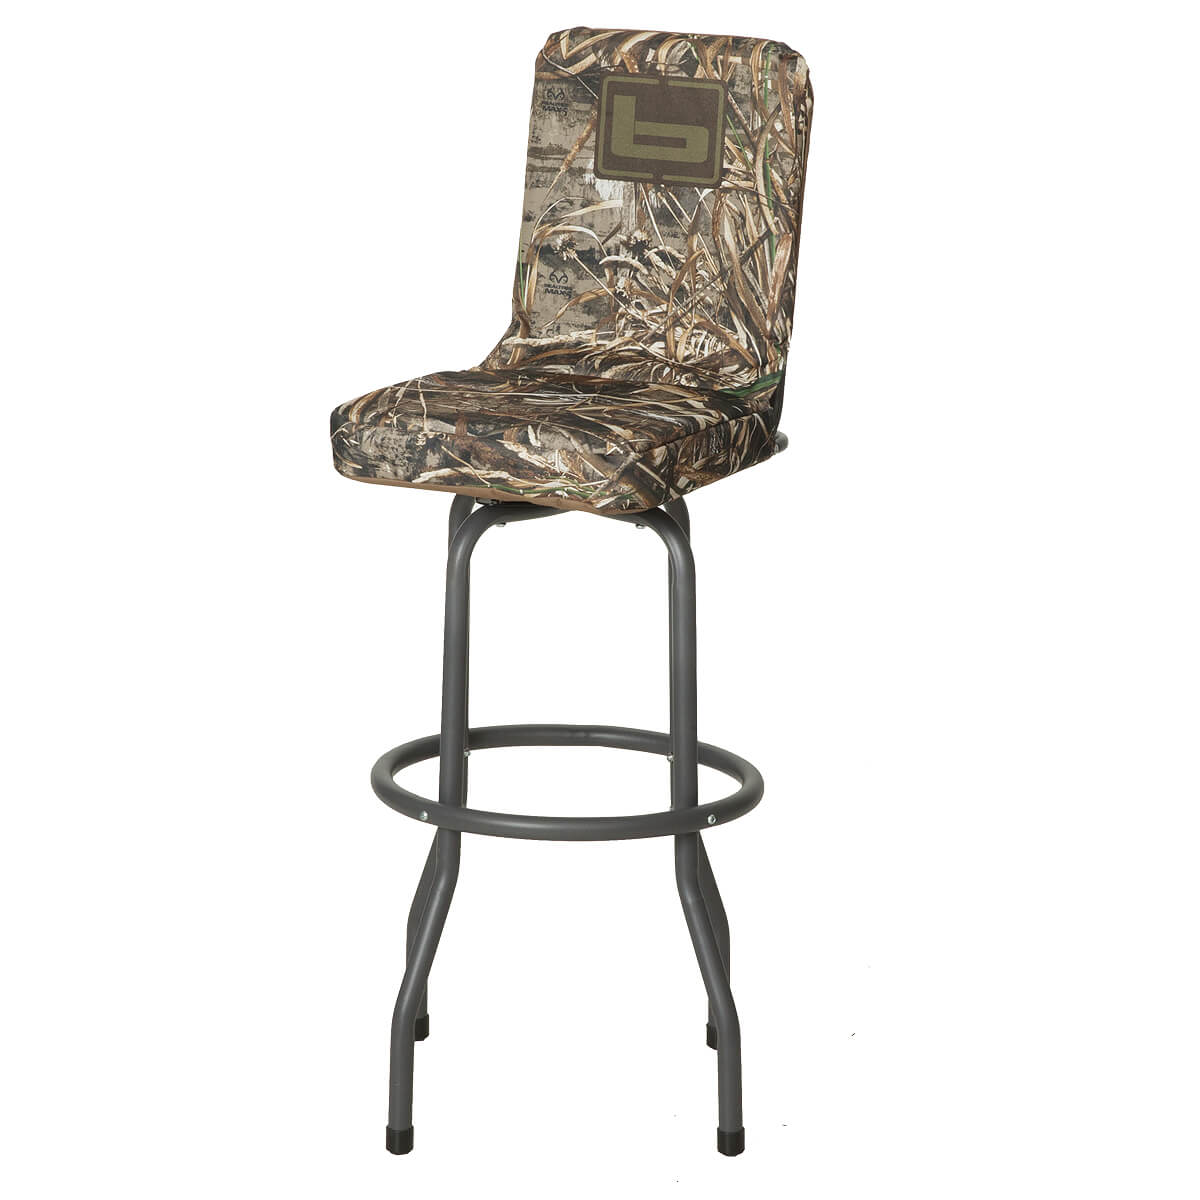 big and tall hunting chairs revolving chair for doctor duck stools the blind field marsh banded hi top